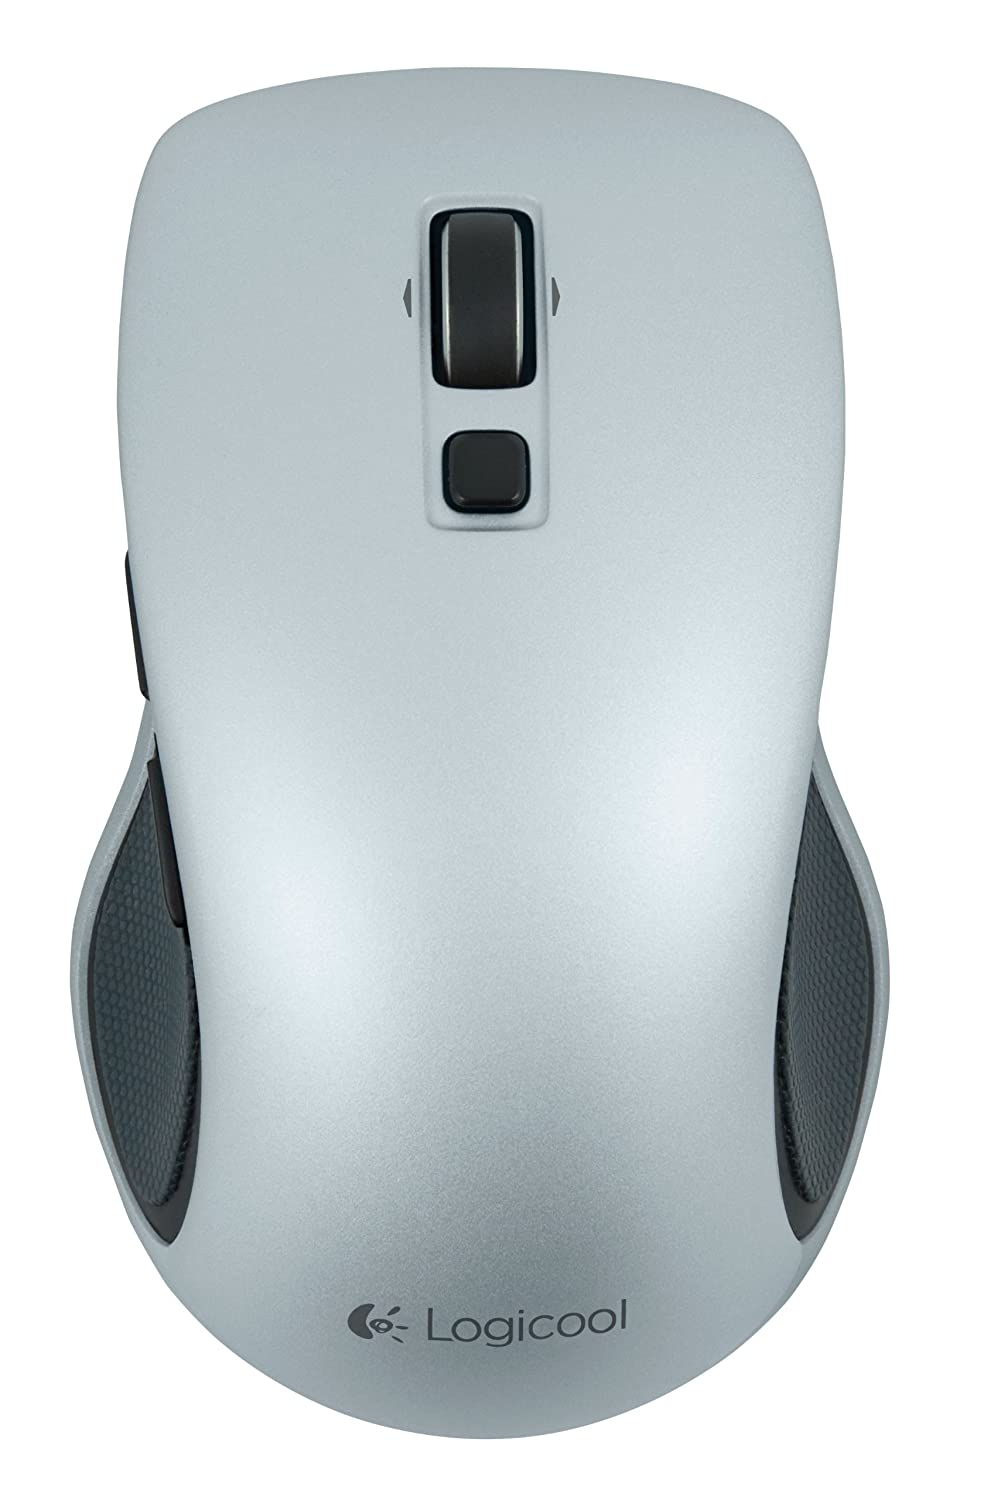 Logicool Wireless Mouse M560 M560LS